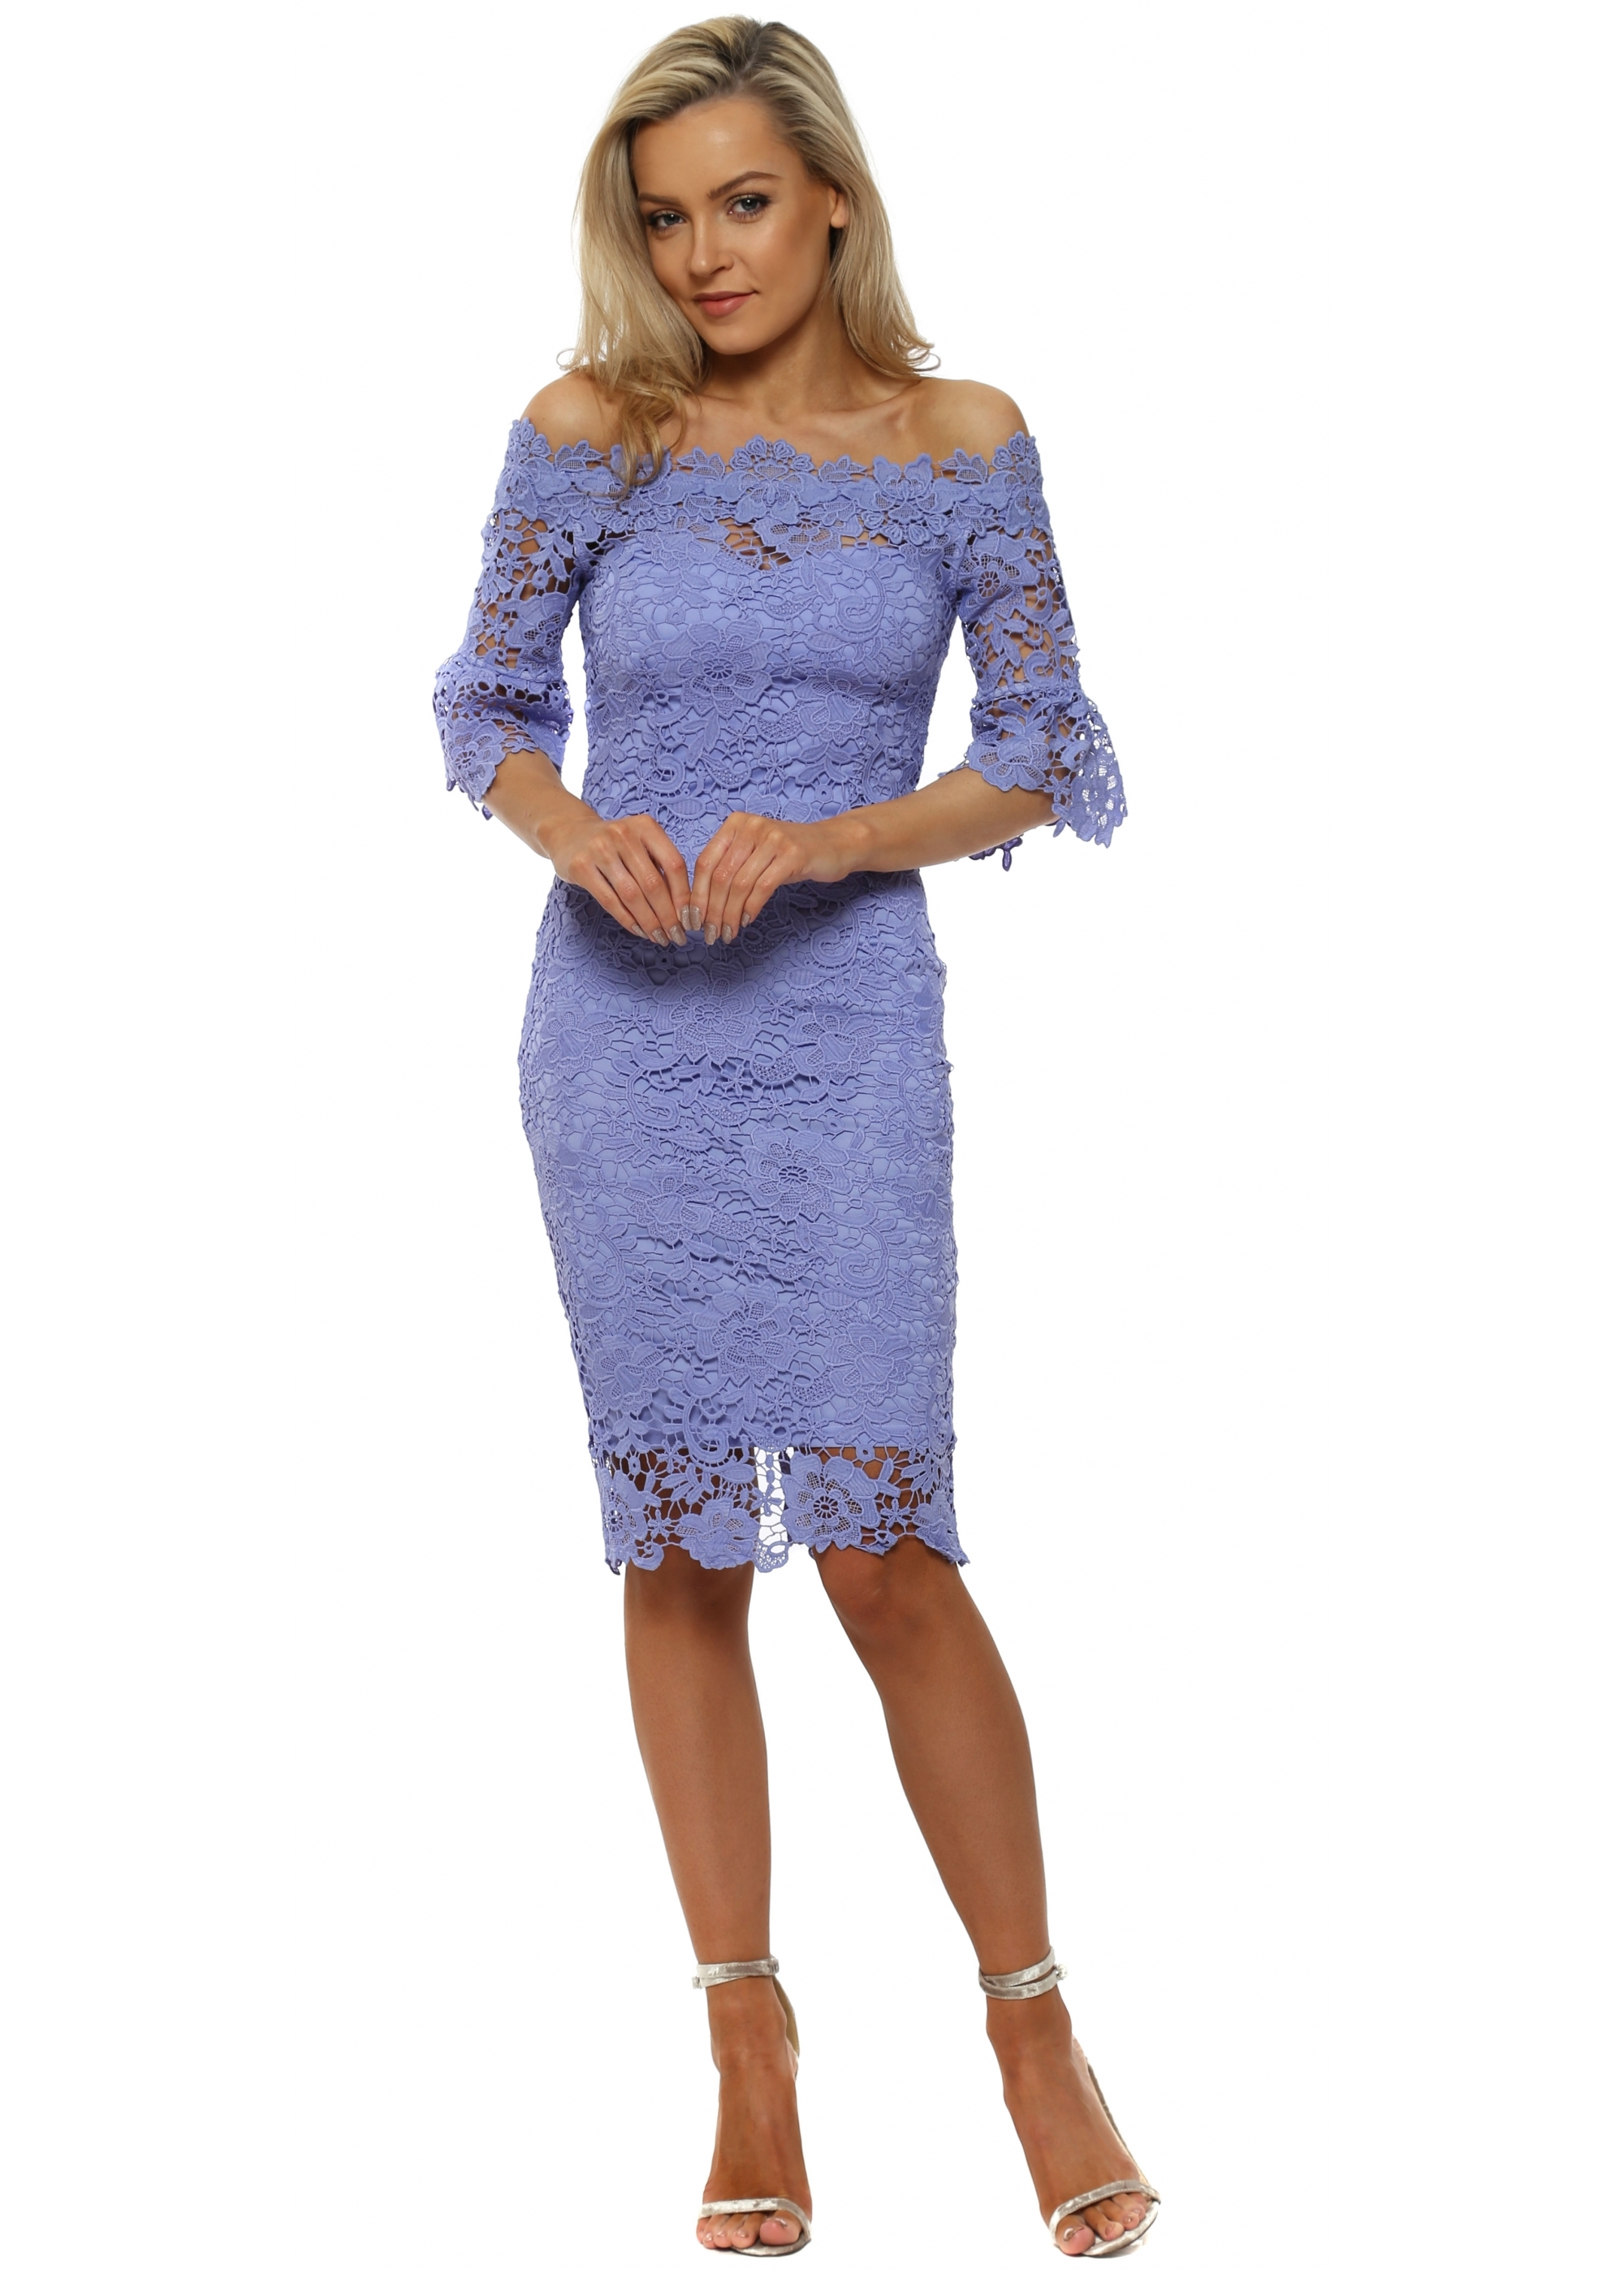 The Blue Skies Bustier Lace Pencil Dress is fully lined except at back which is semi-sheer lace. The dress is lined with a contrasting cream liner. We love how the liner makes the pretty pale blue color pop! This dress has a bustier style top with boning for structure. It has adjustable and removable straps to create two different looks.